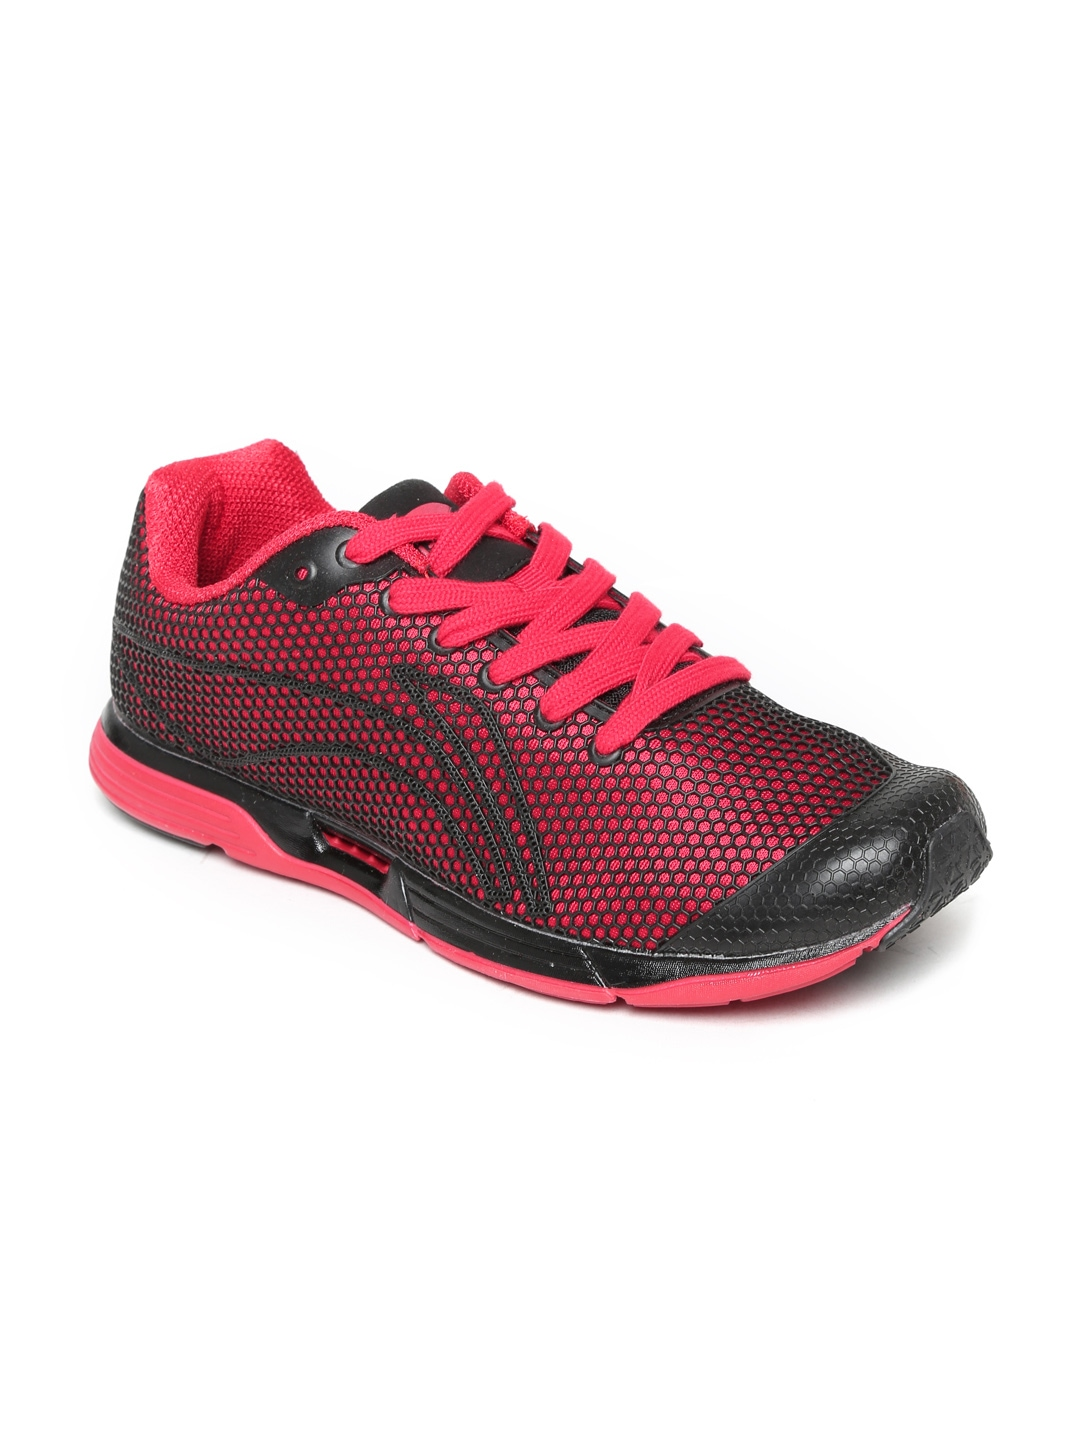 sports authority womens golf shoes 28 images sport